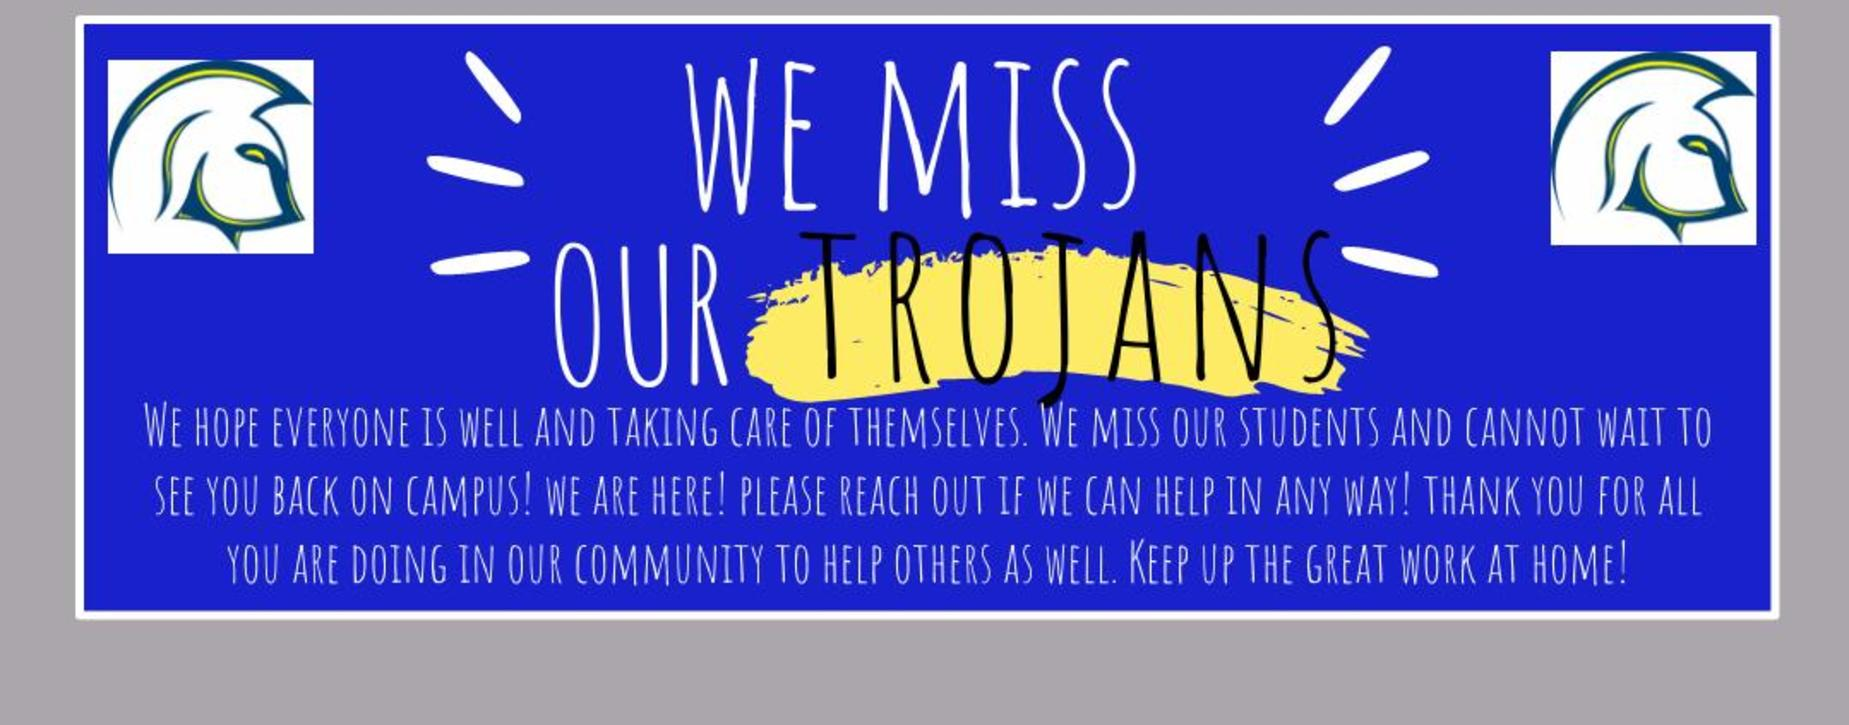 We Miss You Message to our Students